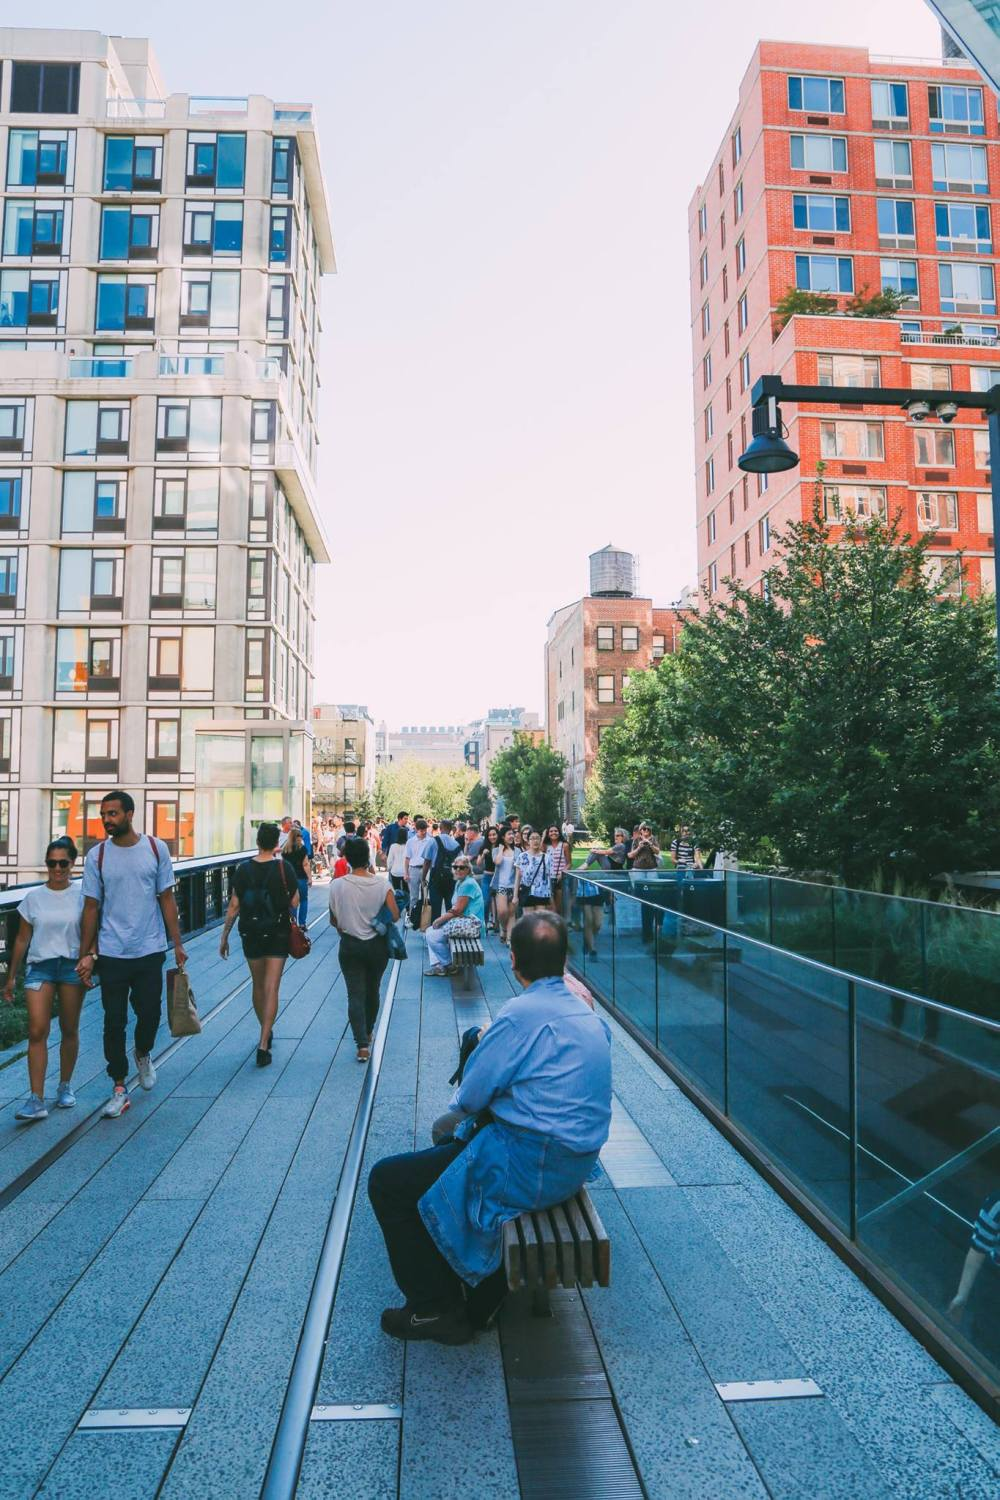 New York Diary: The High Line, Lego House And New York Fashion Week (1)